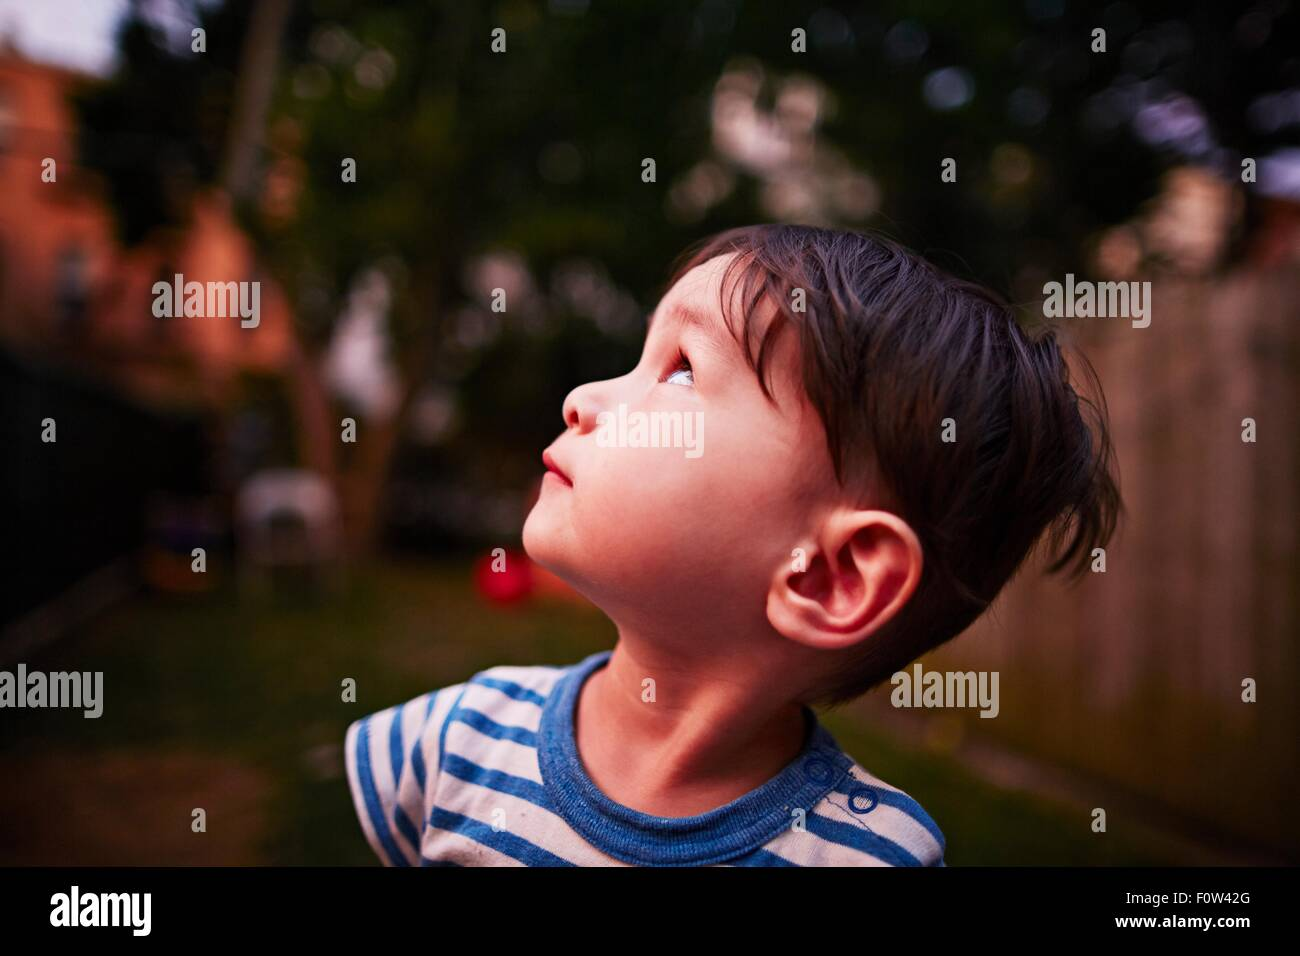 Boy looking up dans le ciel Photo Stock